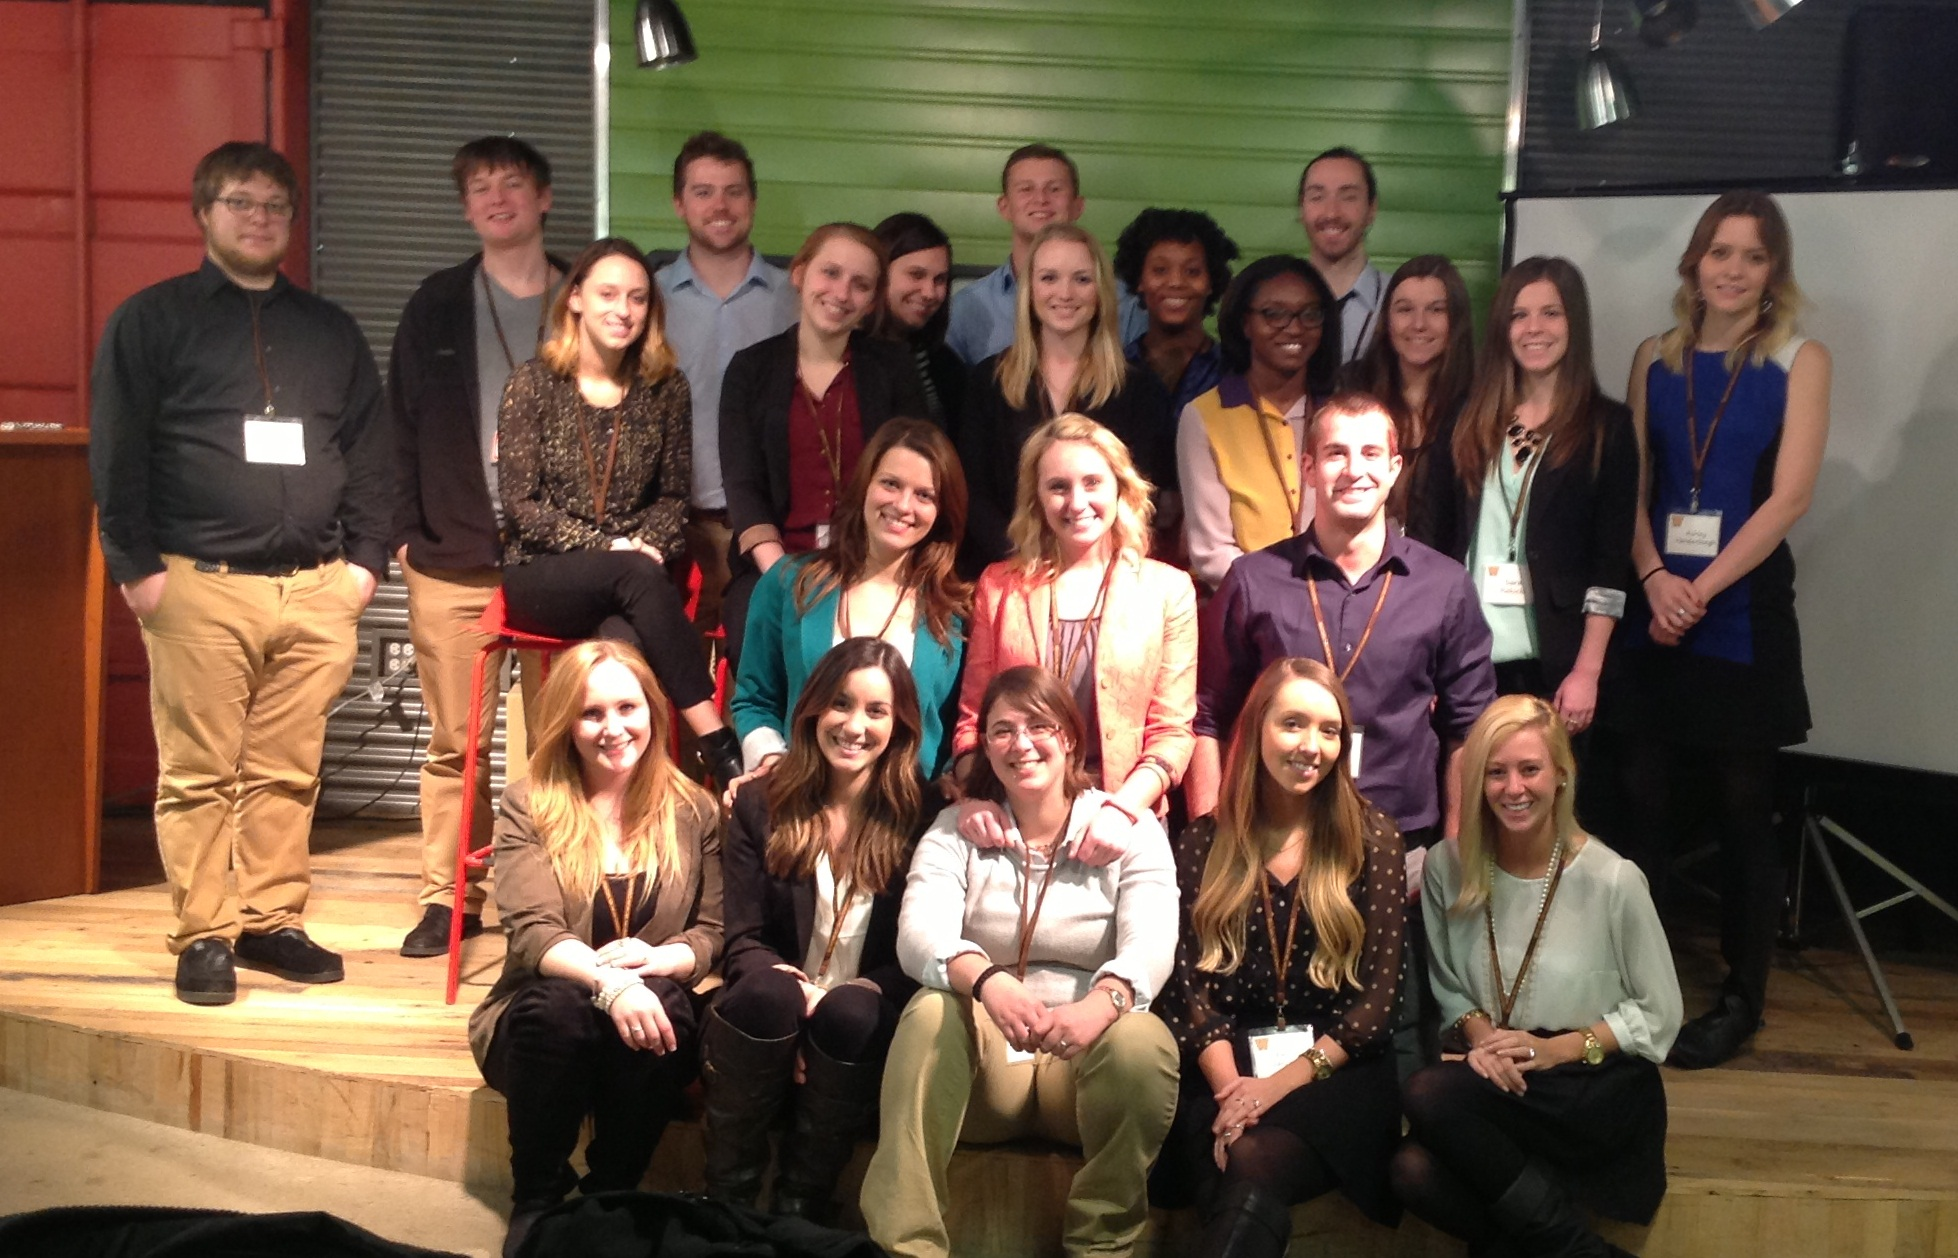 Students at Digitas